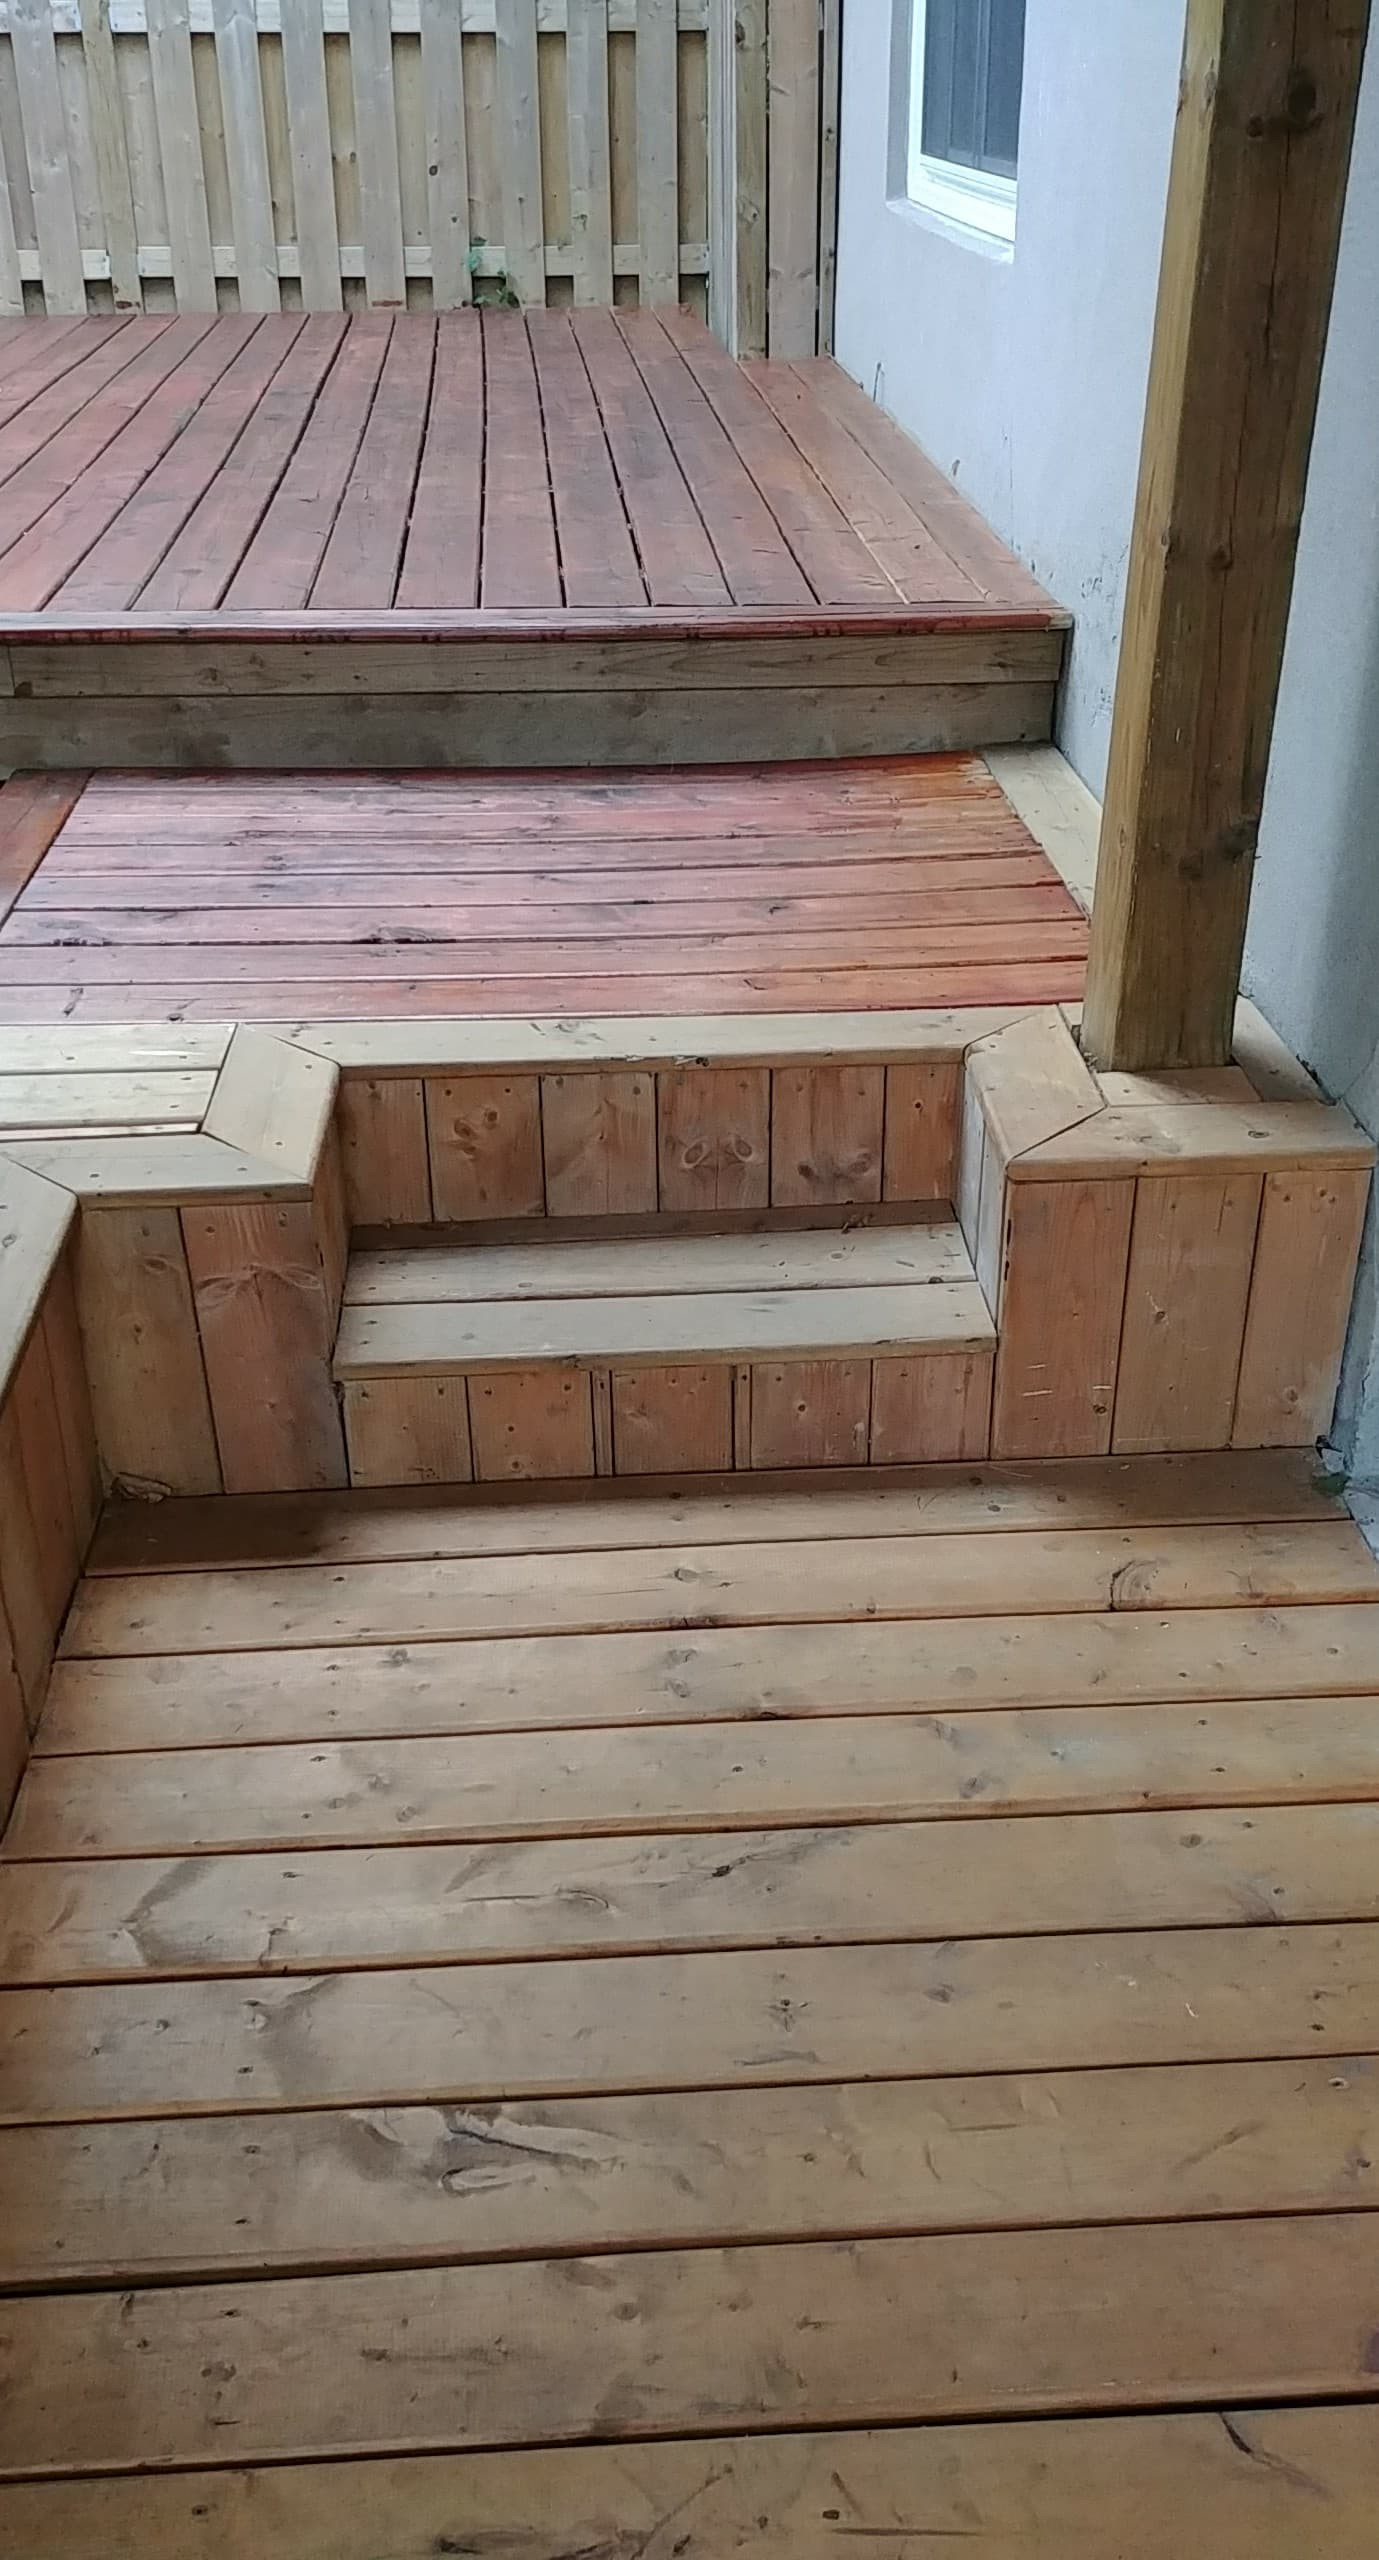 cost to refinish hardwood floors michigan of deck stripping removing an old deck stain best deck stain pertaining to received 10160484697775231